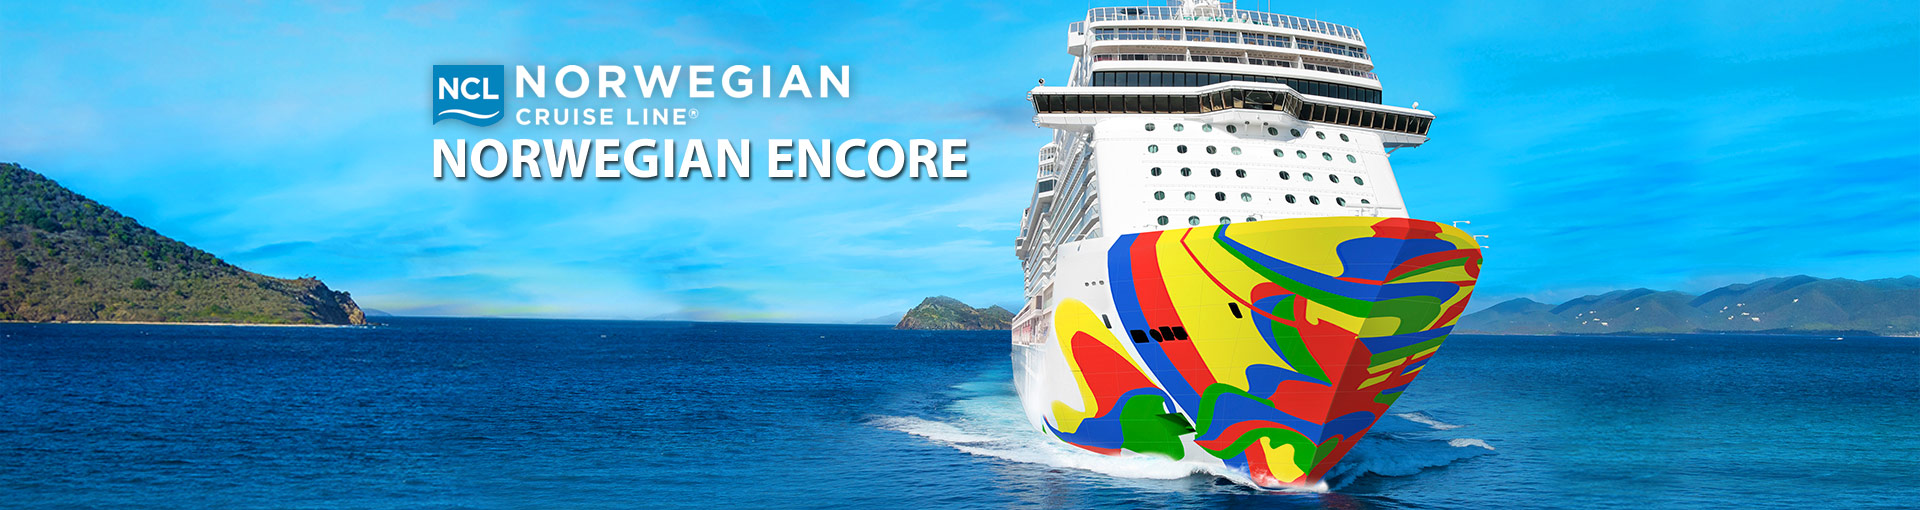 Norwegian Encore Cruise Ship